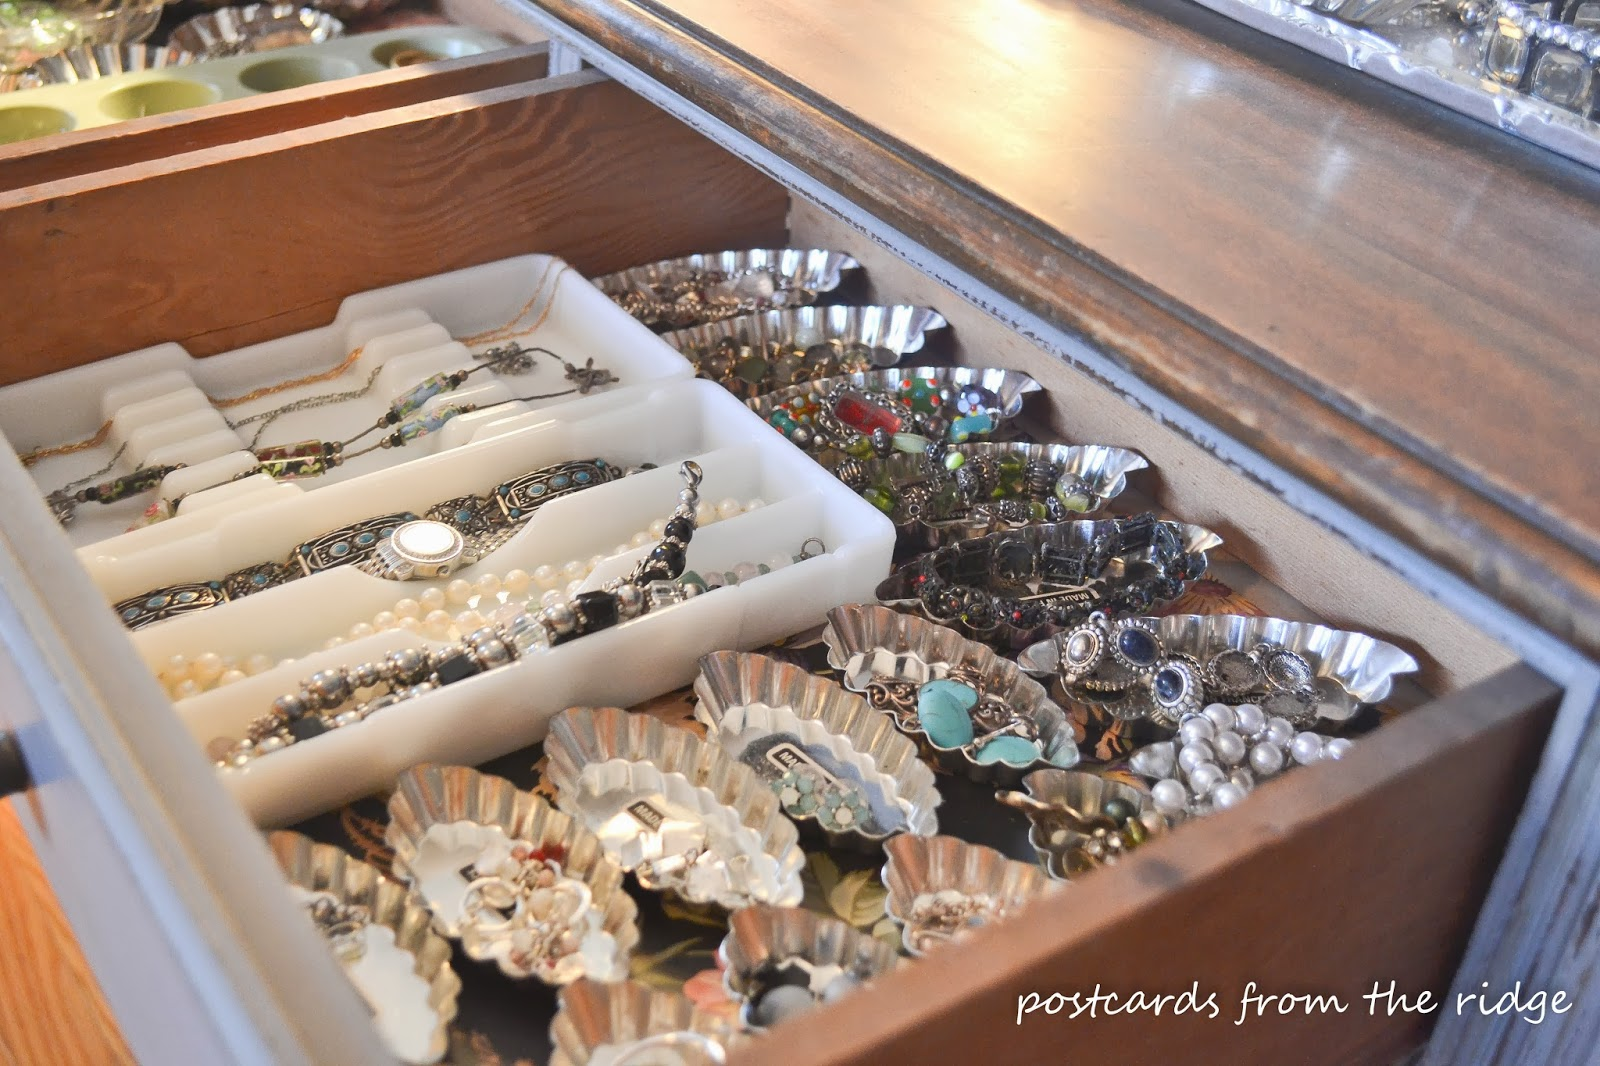 Vintage tart tins, dental trays, and other items repurposed for jewelry organization.  Very clever!